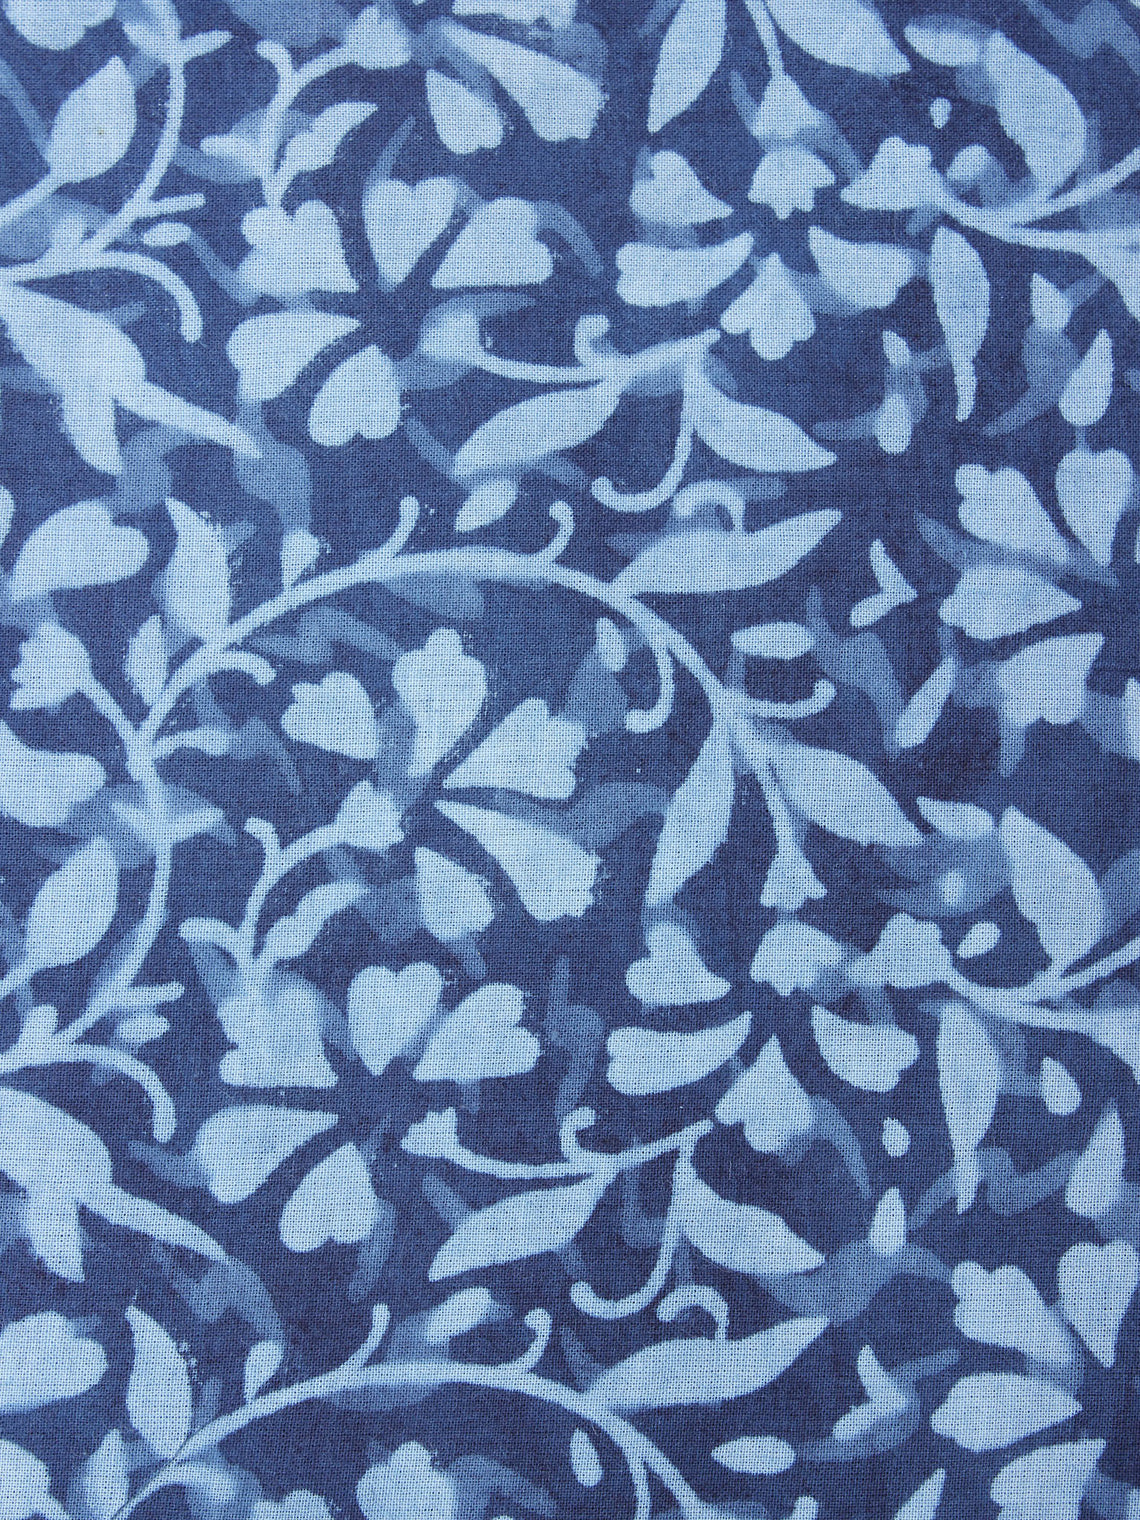 Indigo with Light Blue Color Natural Dyed Hand Block Printed Cotton Fabric Per Meter - F0916207